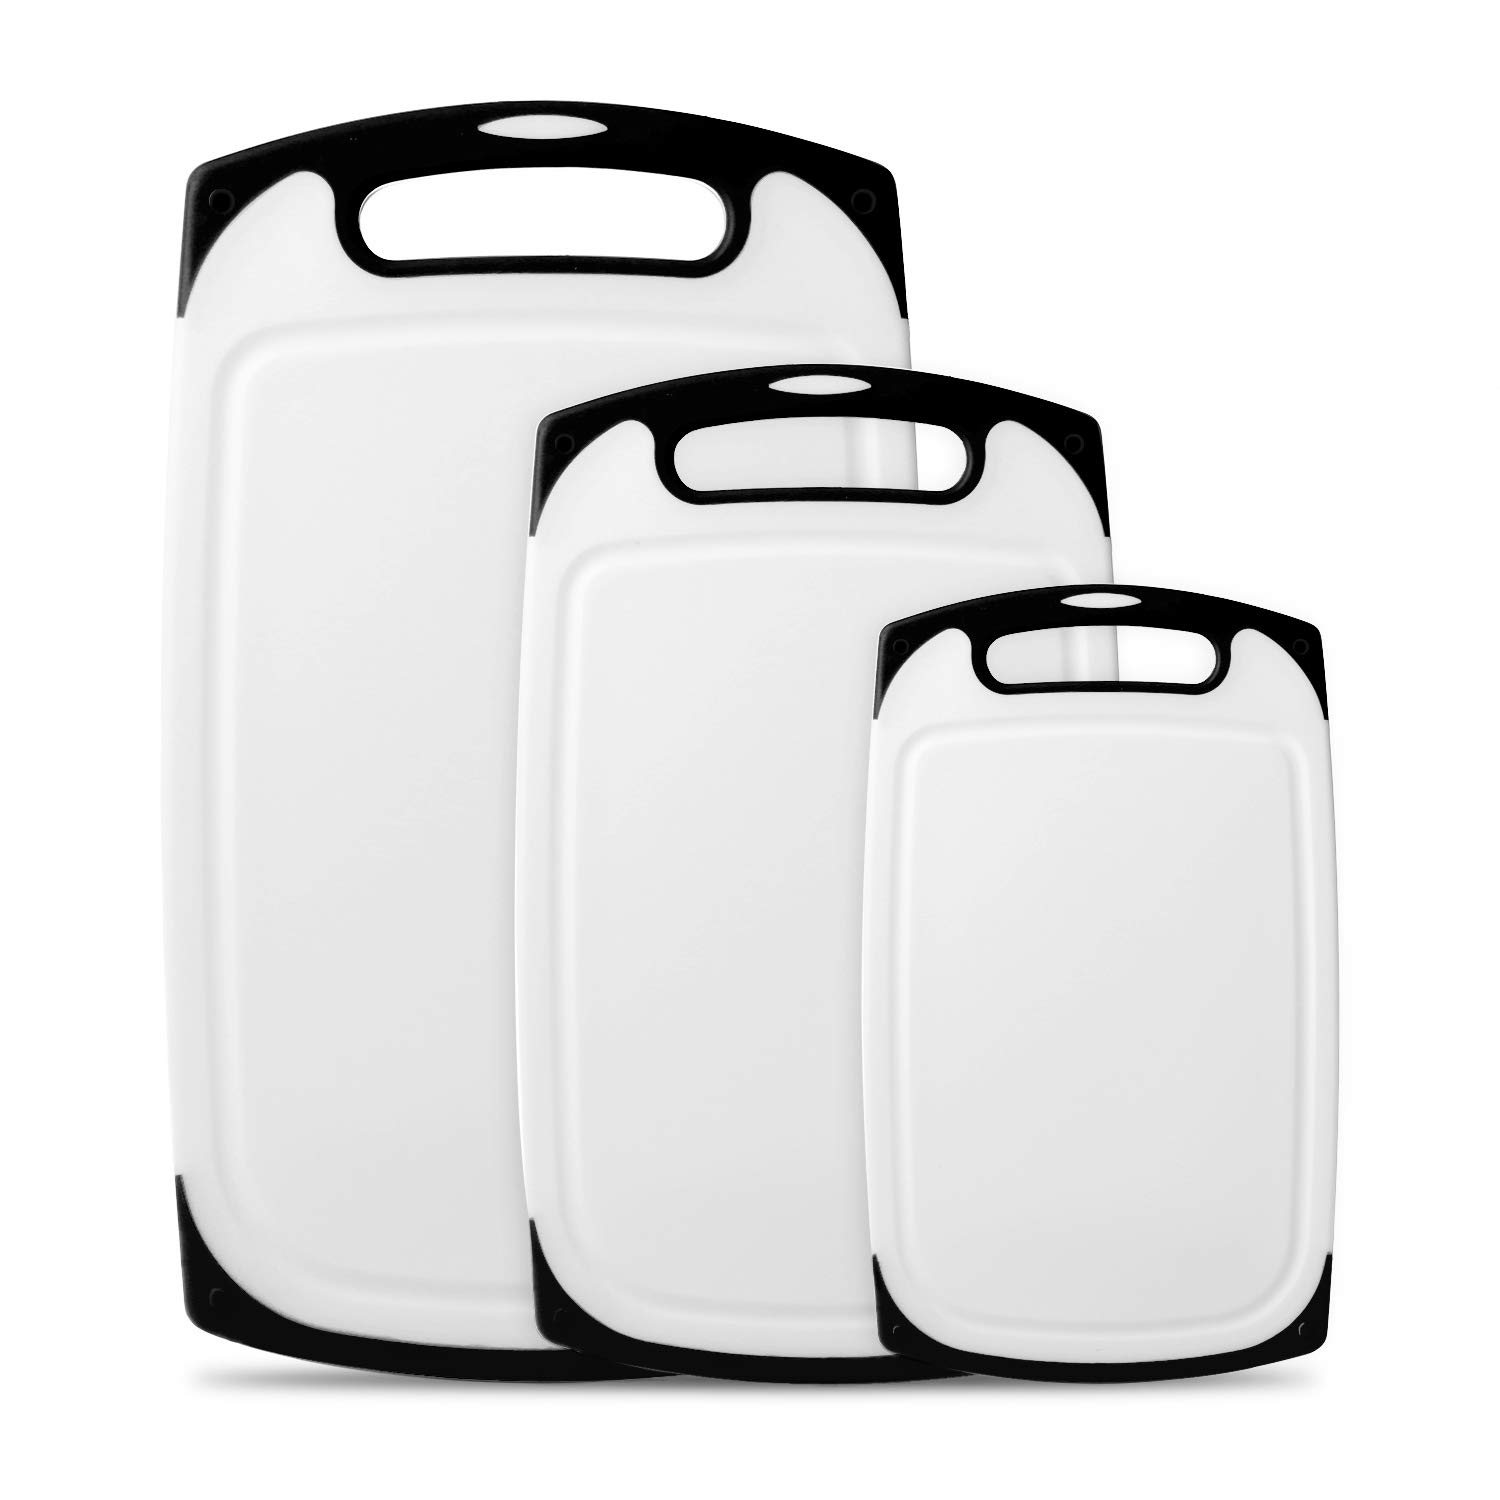 Plastic Cutting Boards Set of 3, Dishwasher Safe